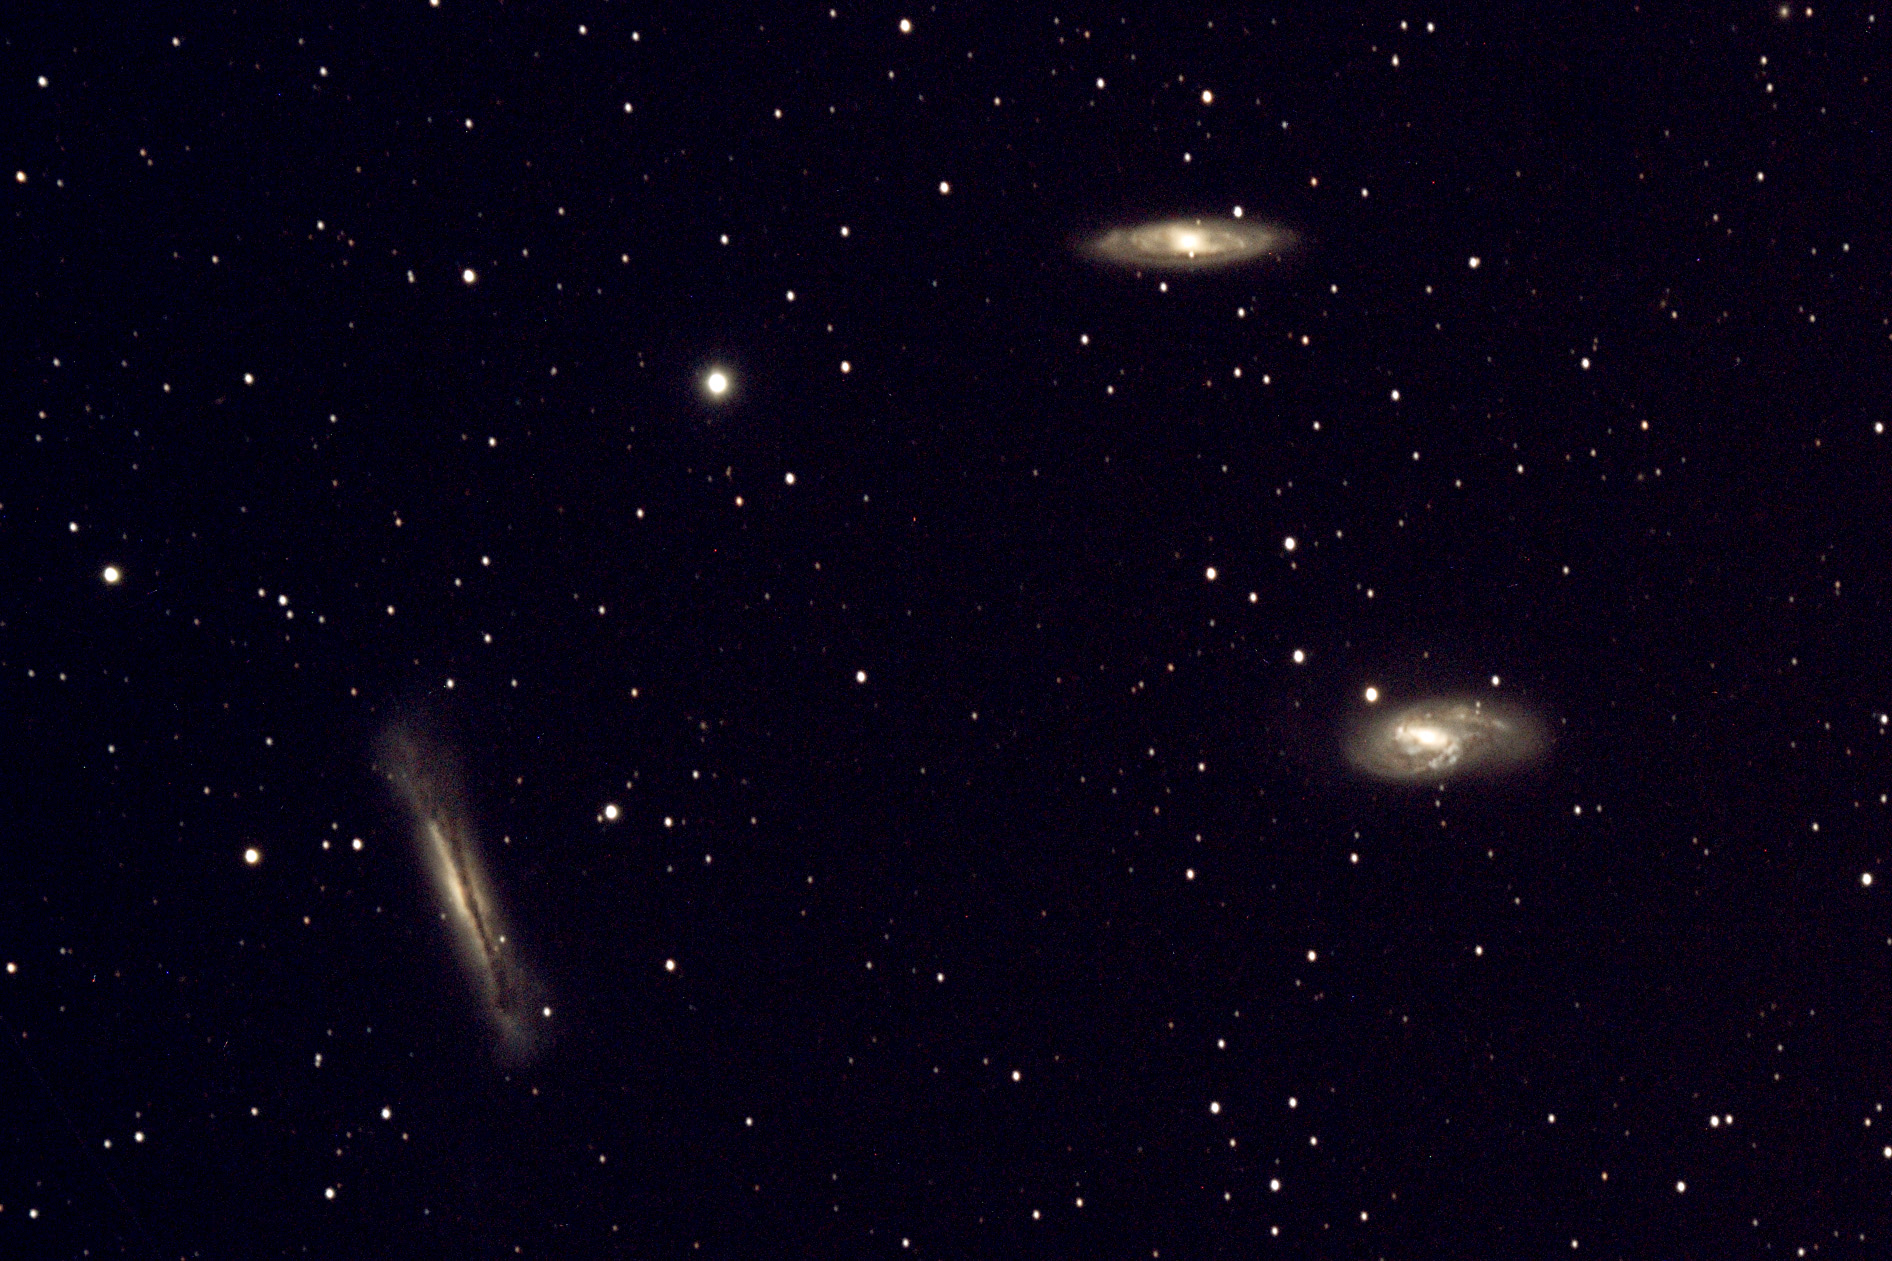 Leo Triplet Galaxies